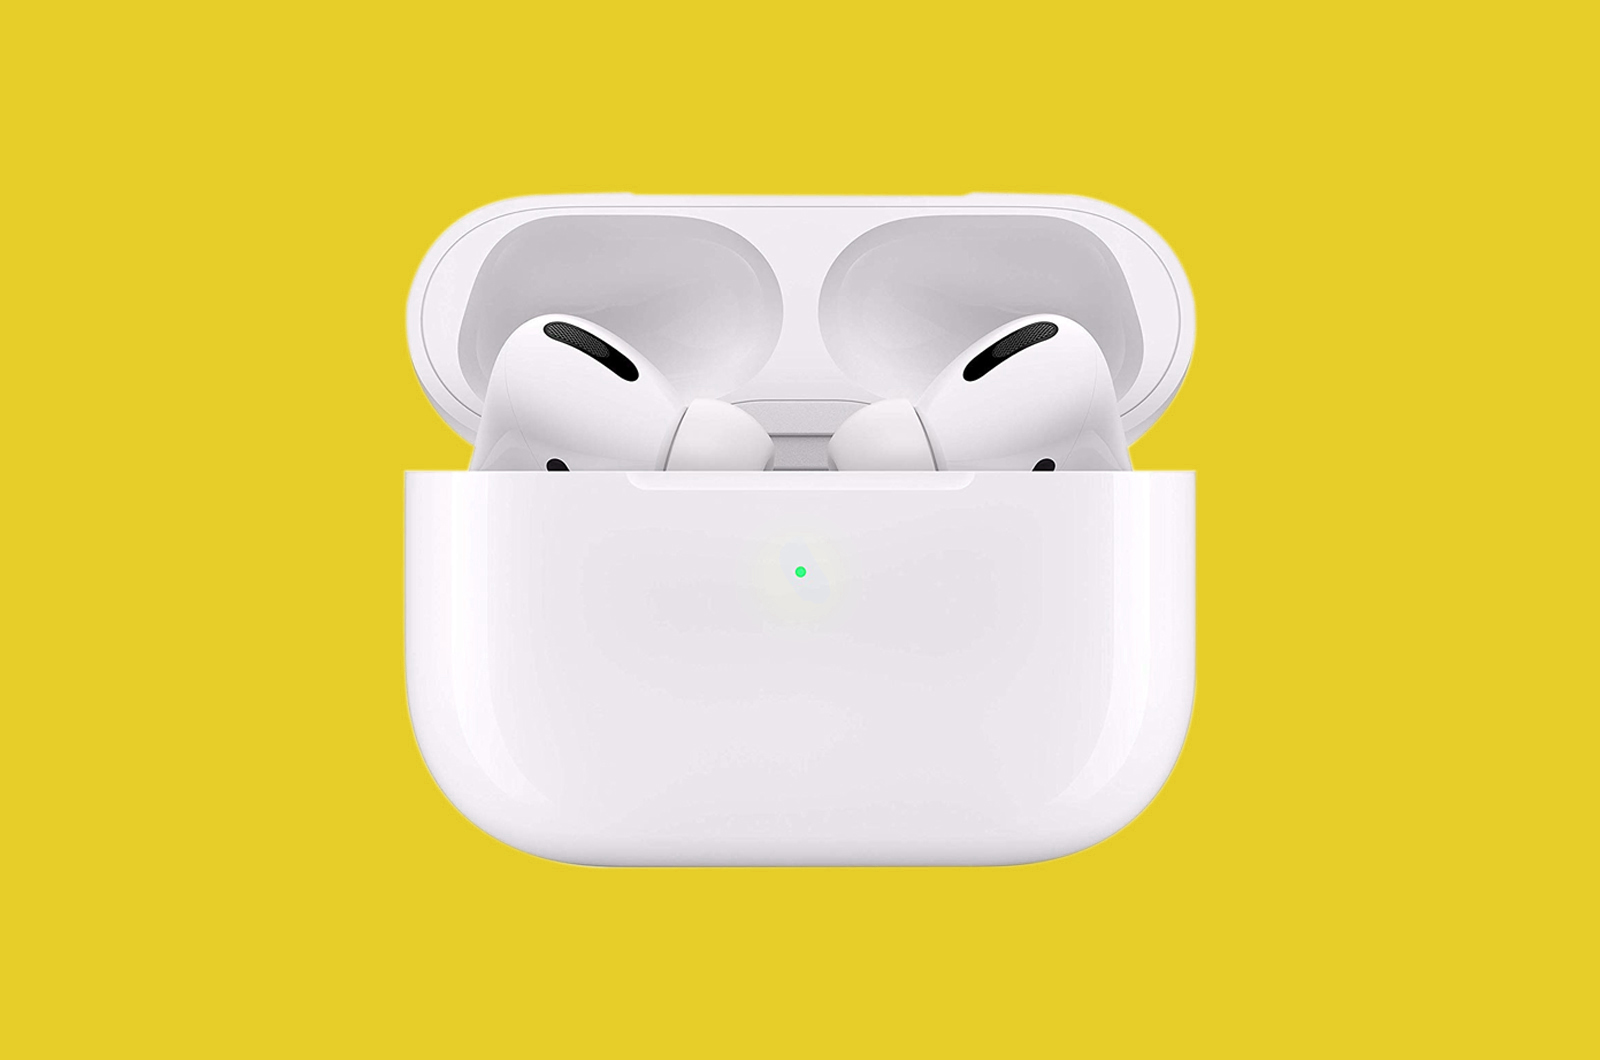 The Best Black Friday Deal on Apple AirPods Pro Is Available Now at Walmart